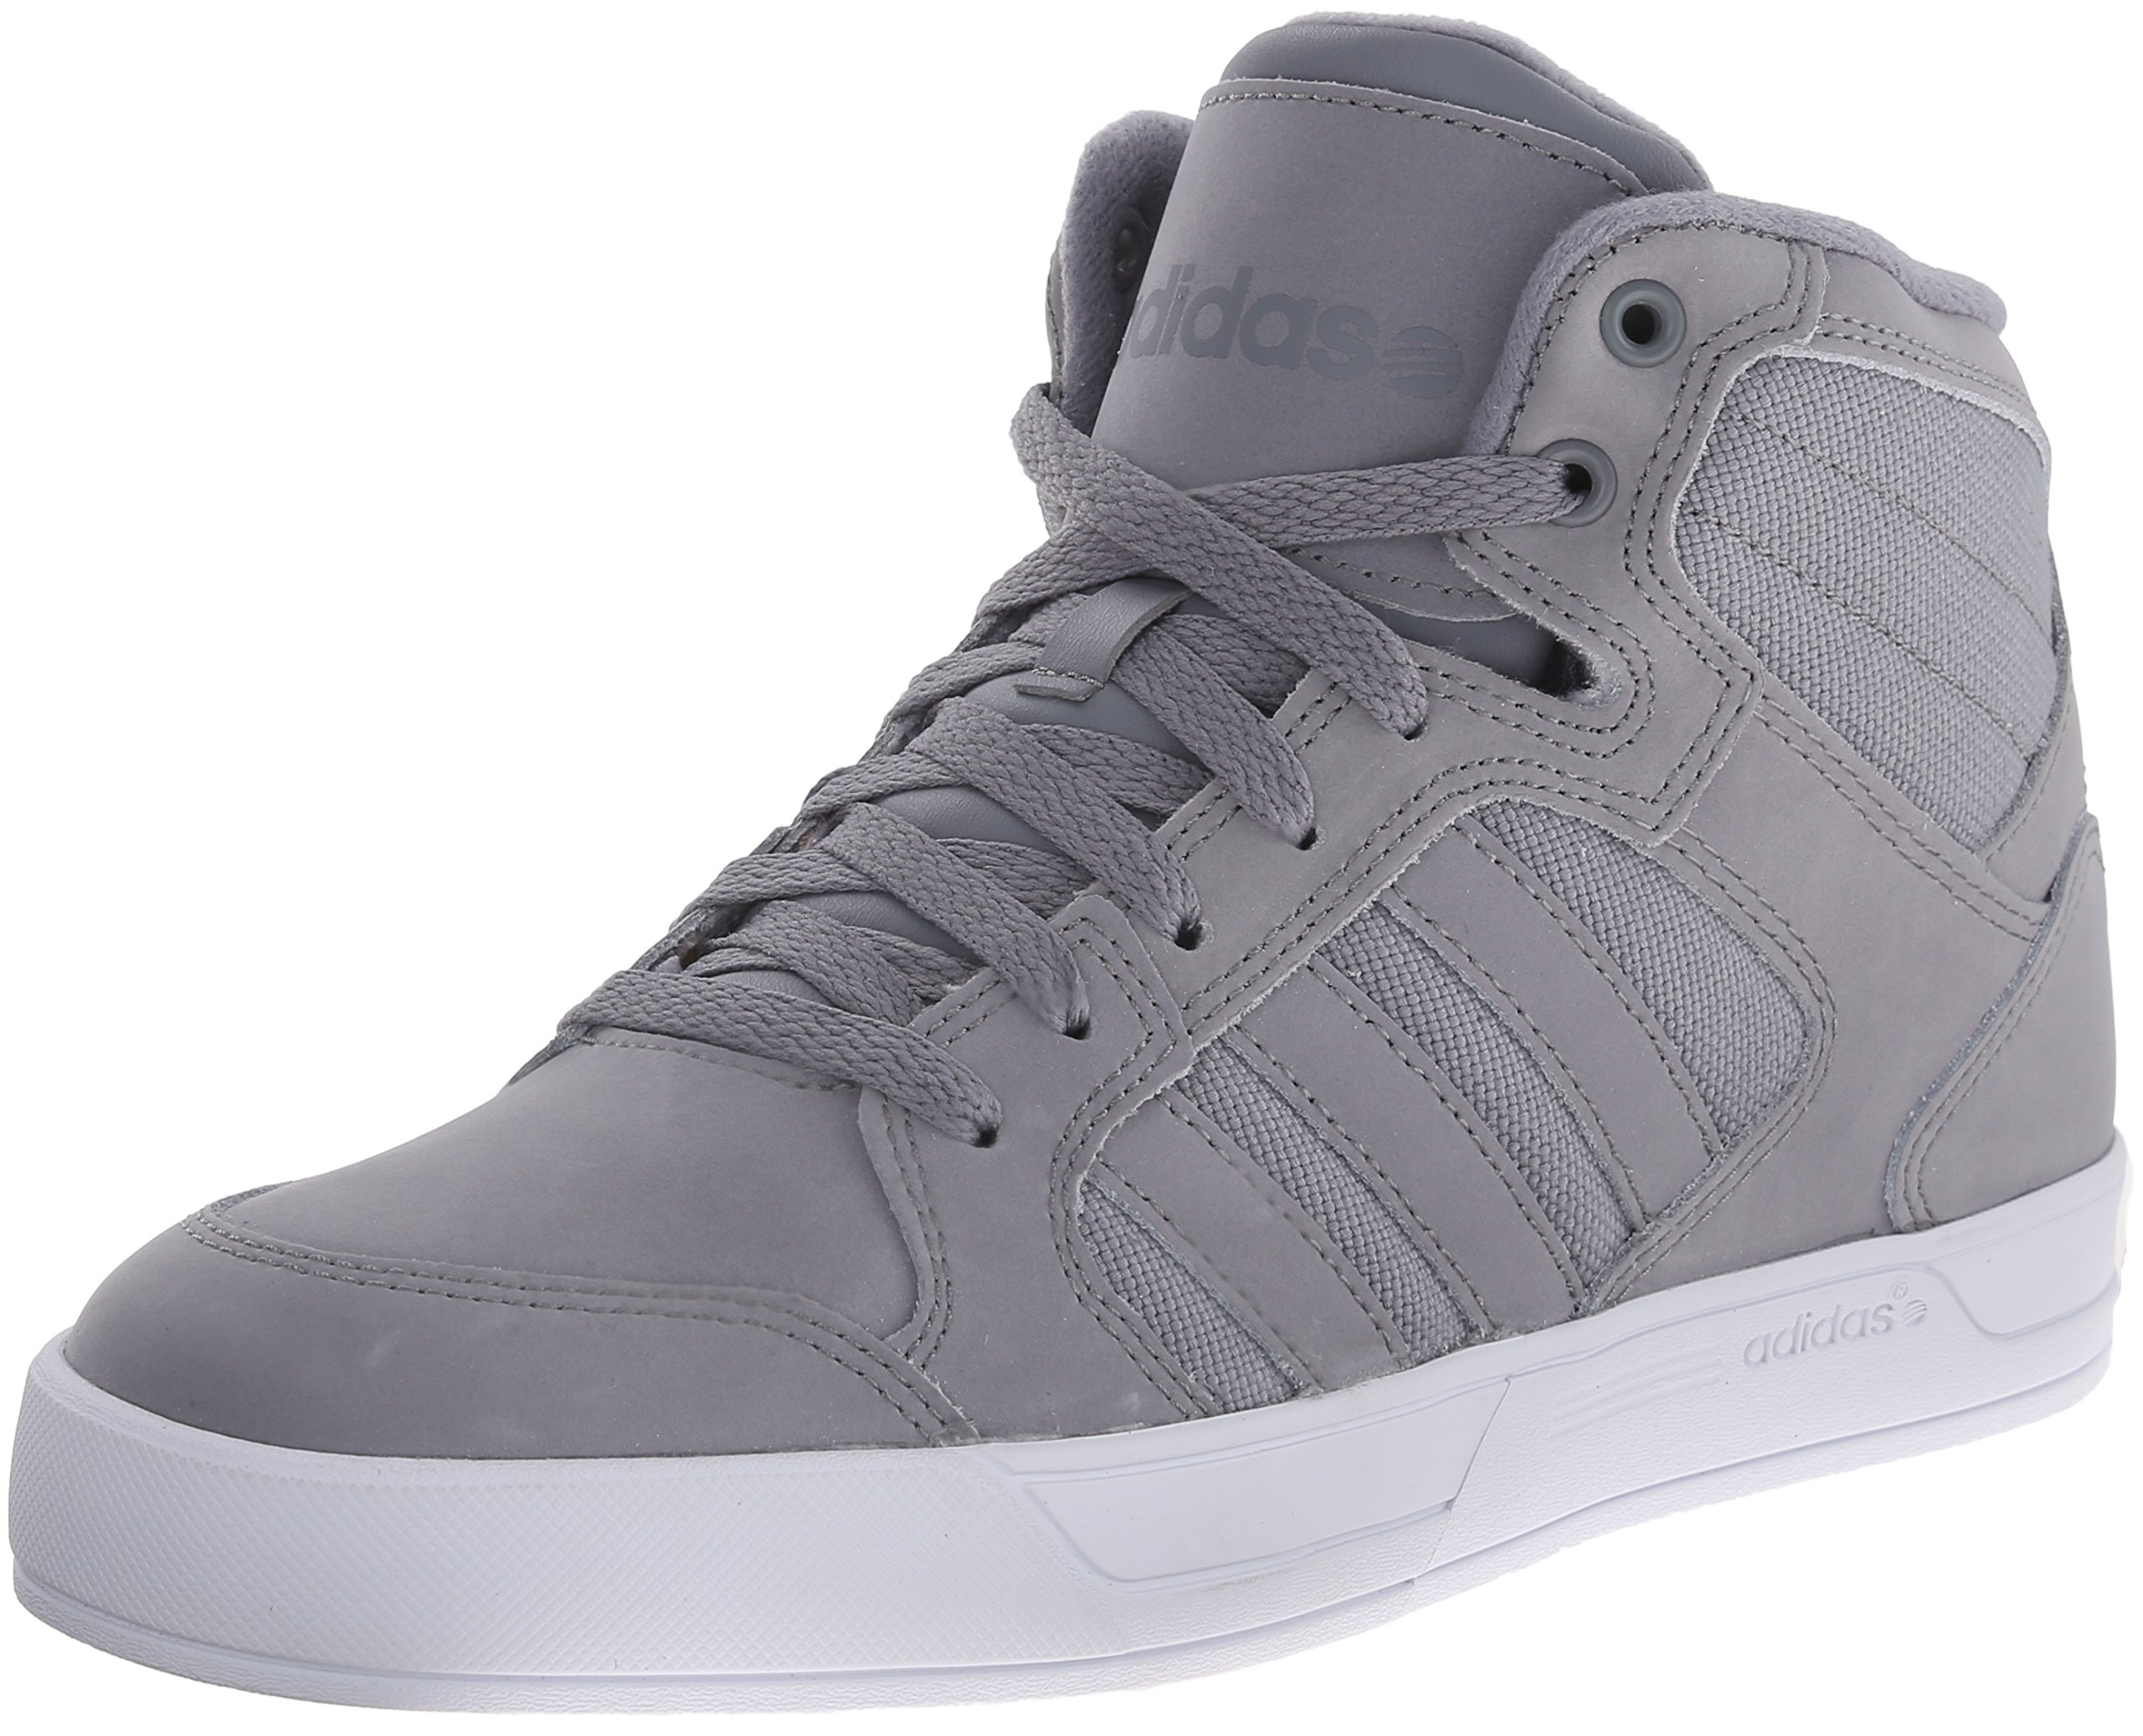 Galleon Adidas NEO Men's Raleigh Mid Lace Up Shoe,Grey